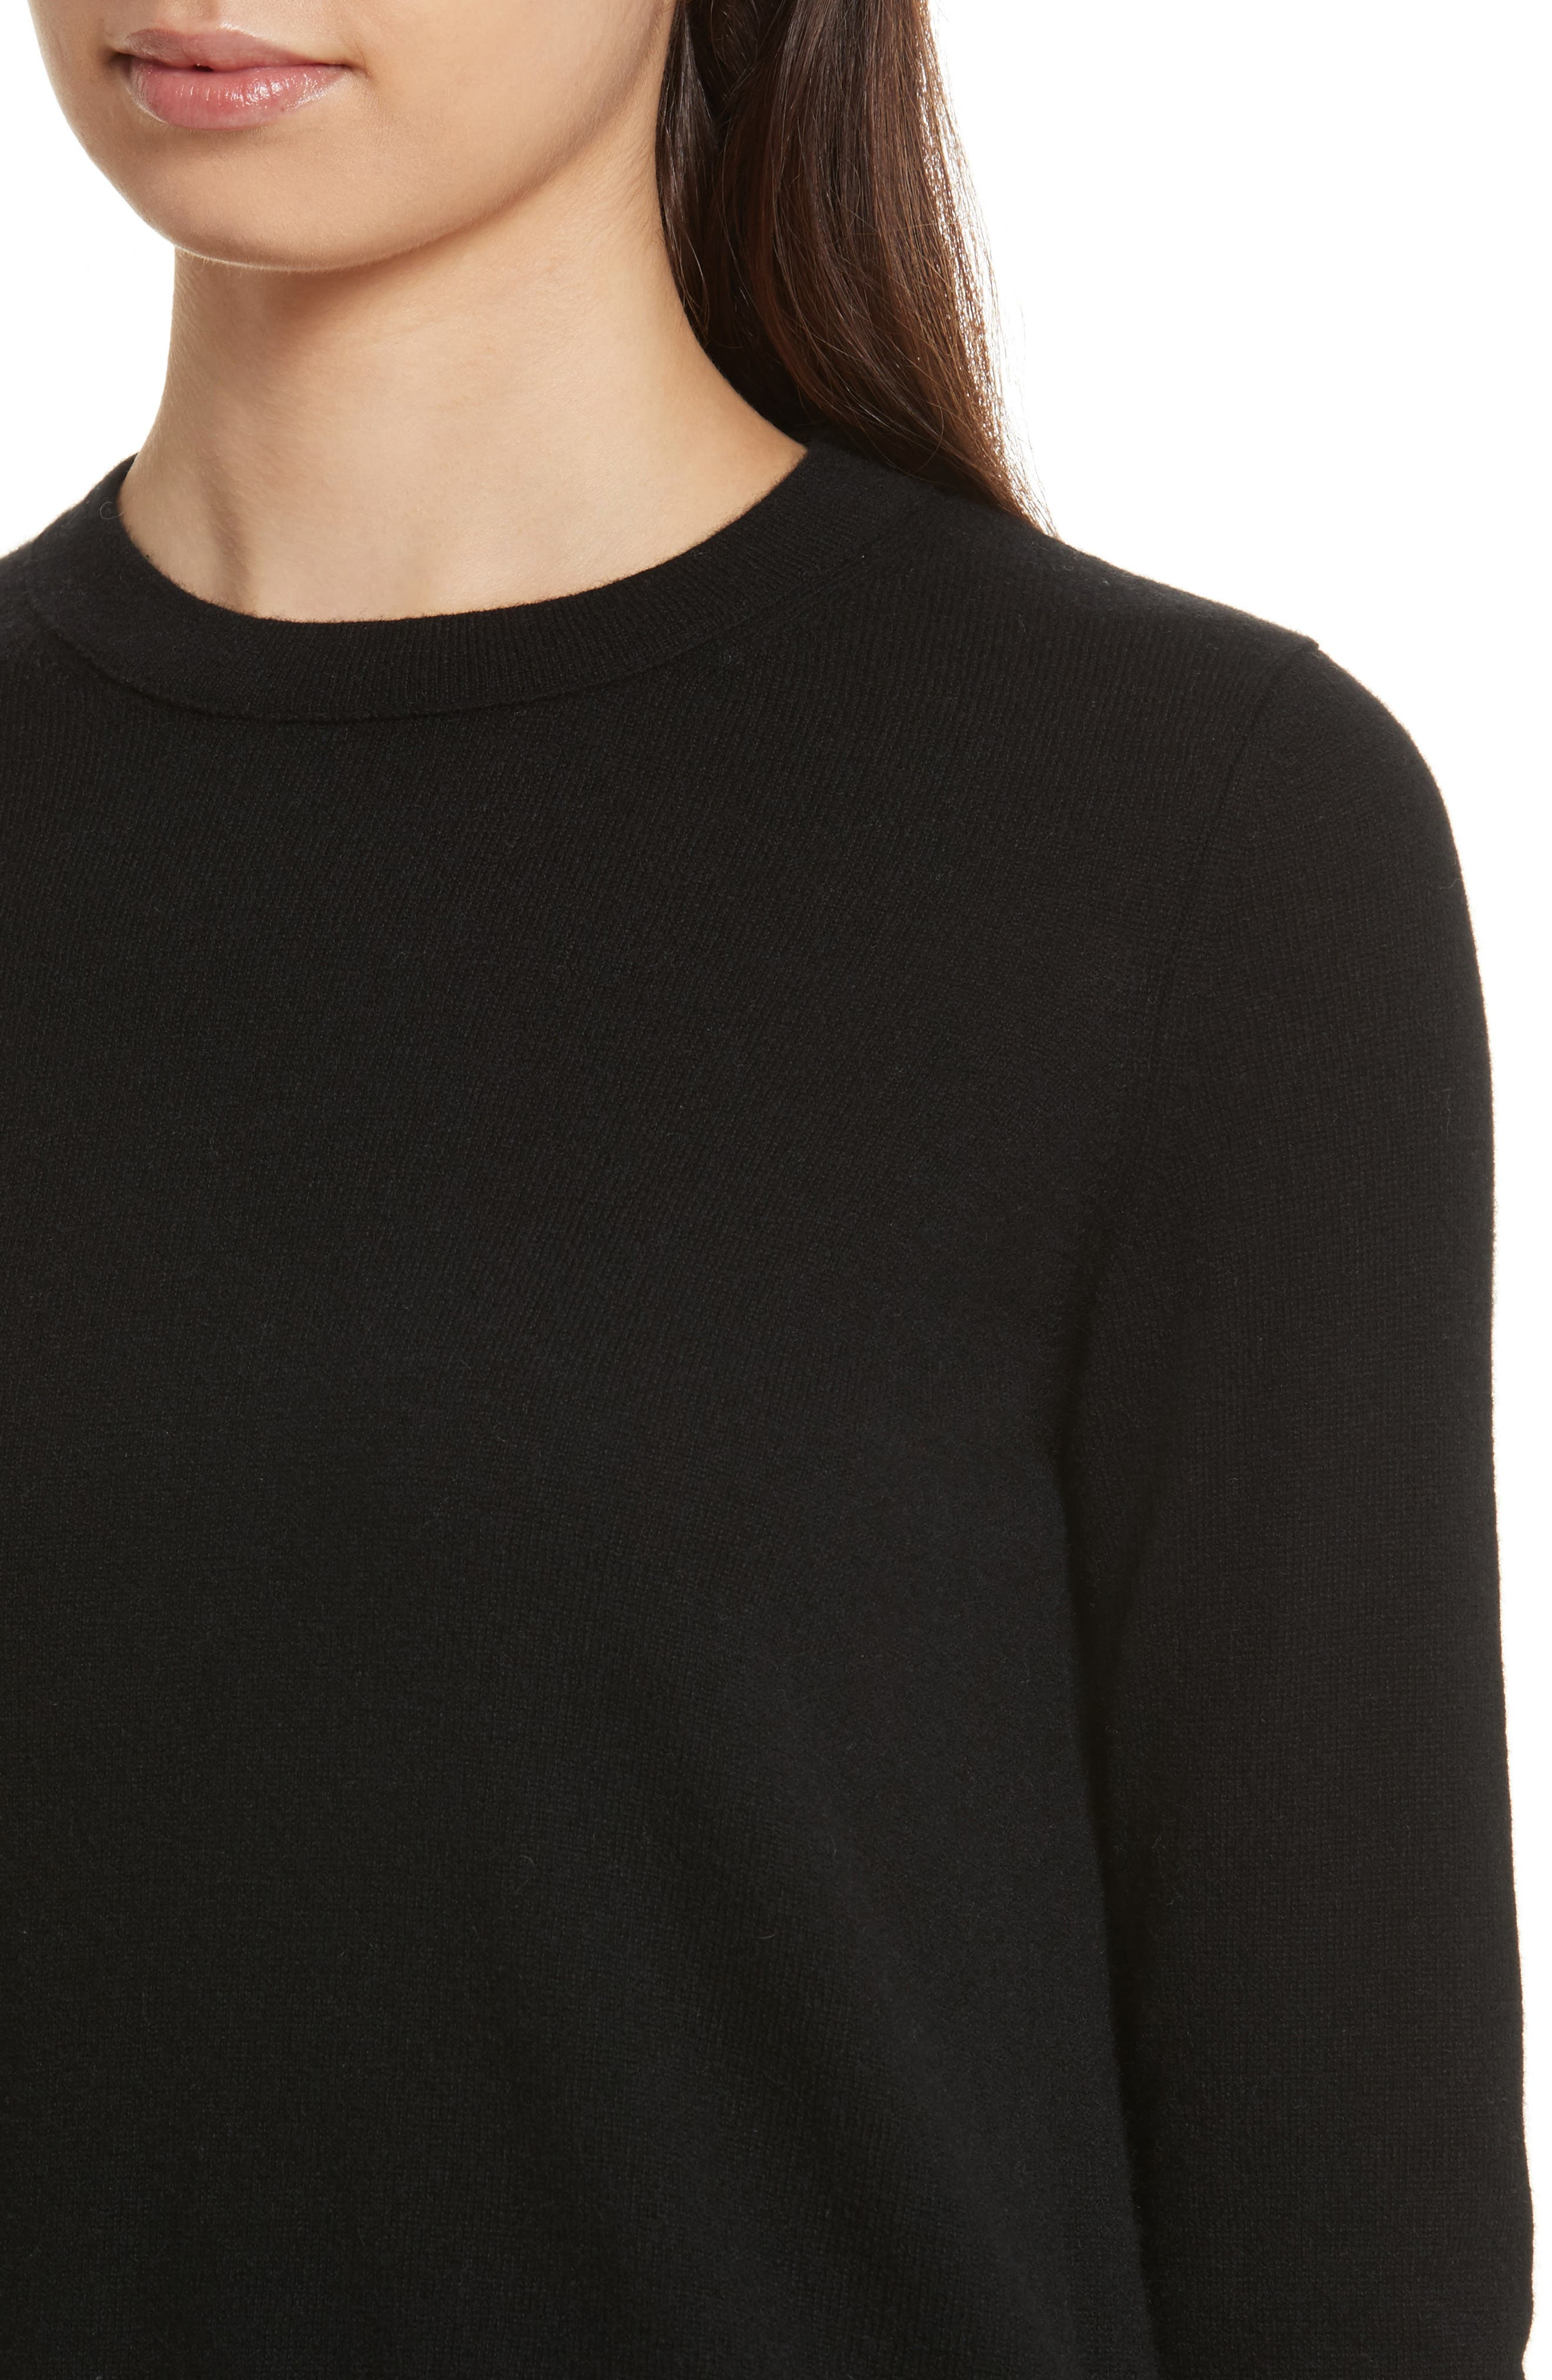 Cashmere Sweater,                             Alternate thumbnail 4, color,                             001